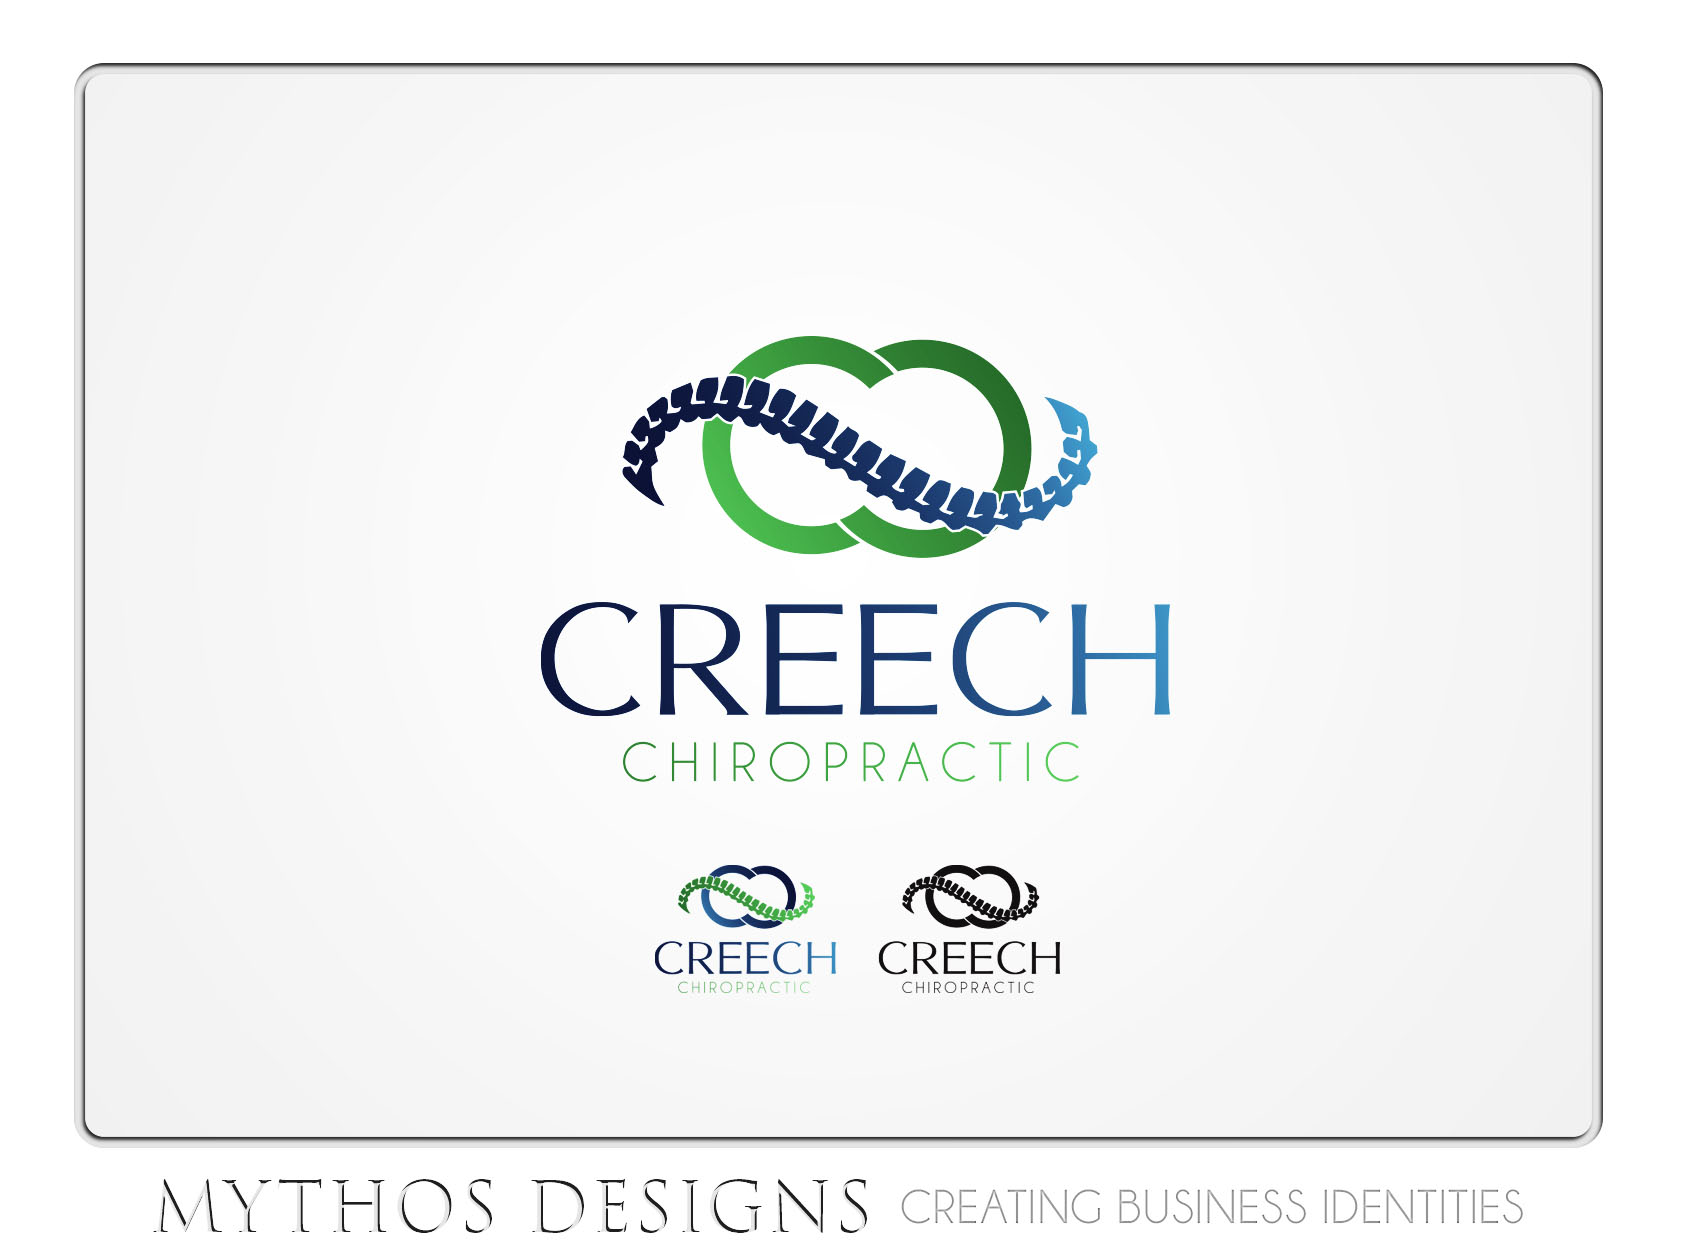 Logo Design by Mythos Designs - Entry No. 85 in the Logo Design Contest Imaginative Logo Design for Creech Chiropractic.